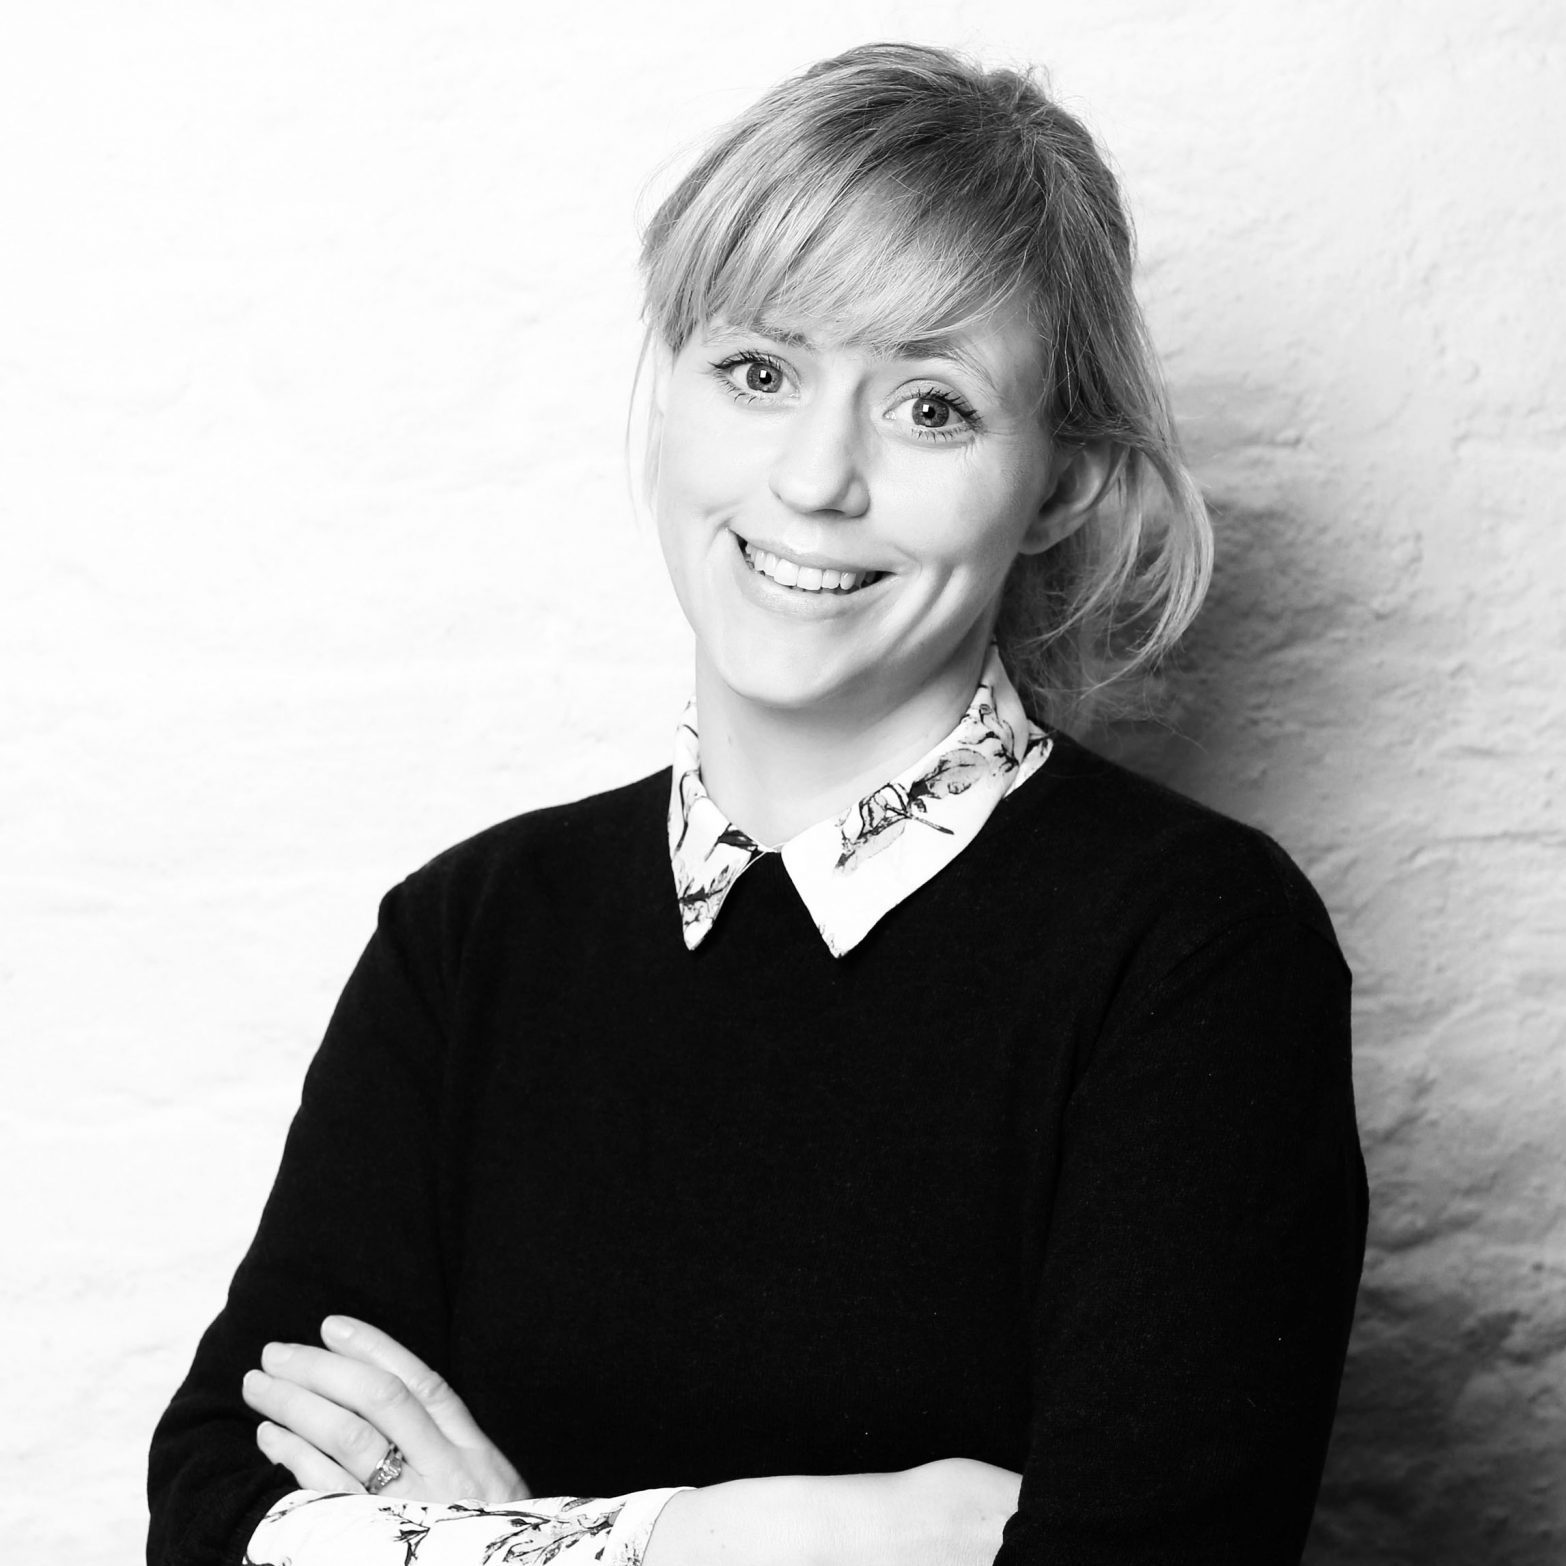 Elaine Parsons ALice PR agency Dublin Wicklow